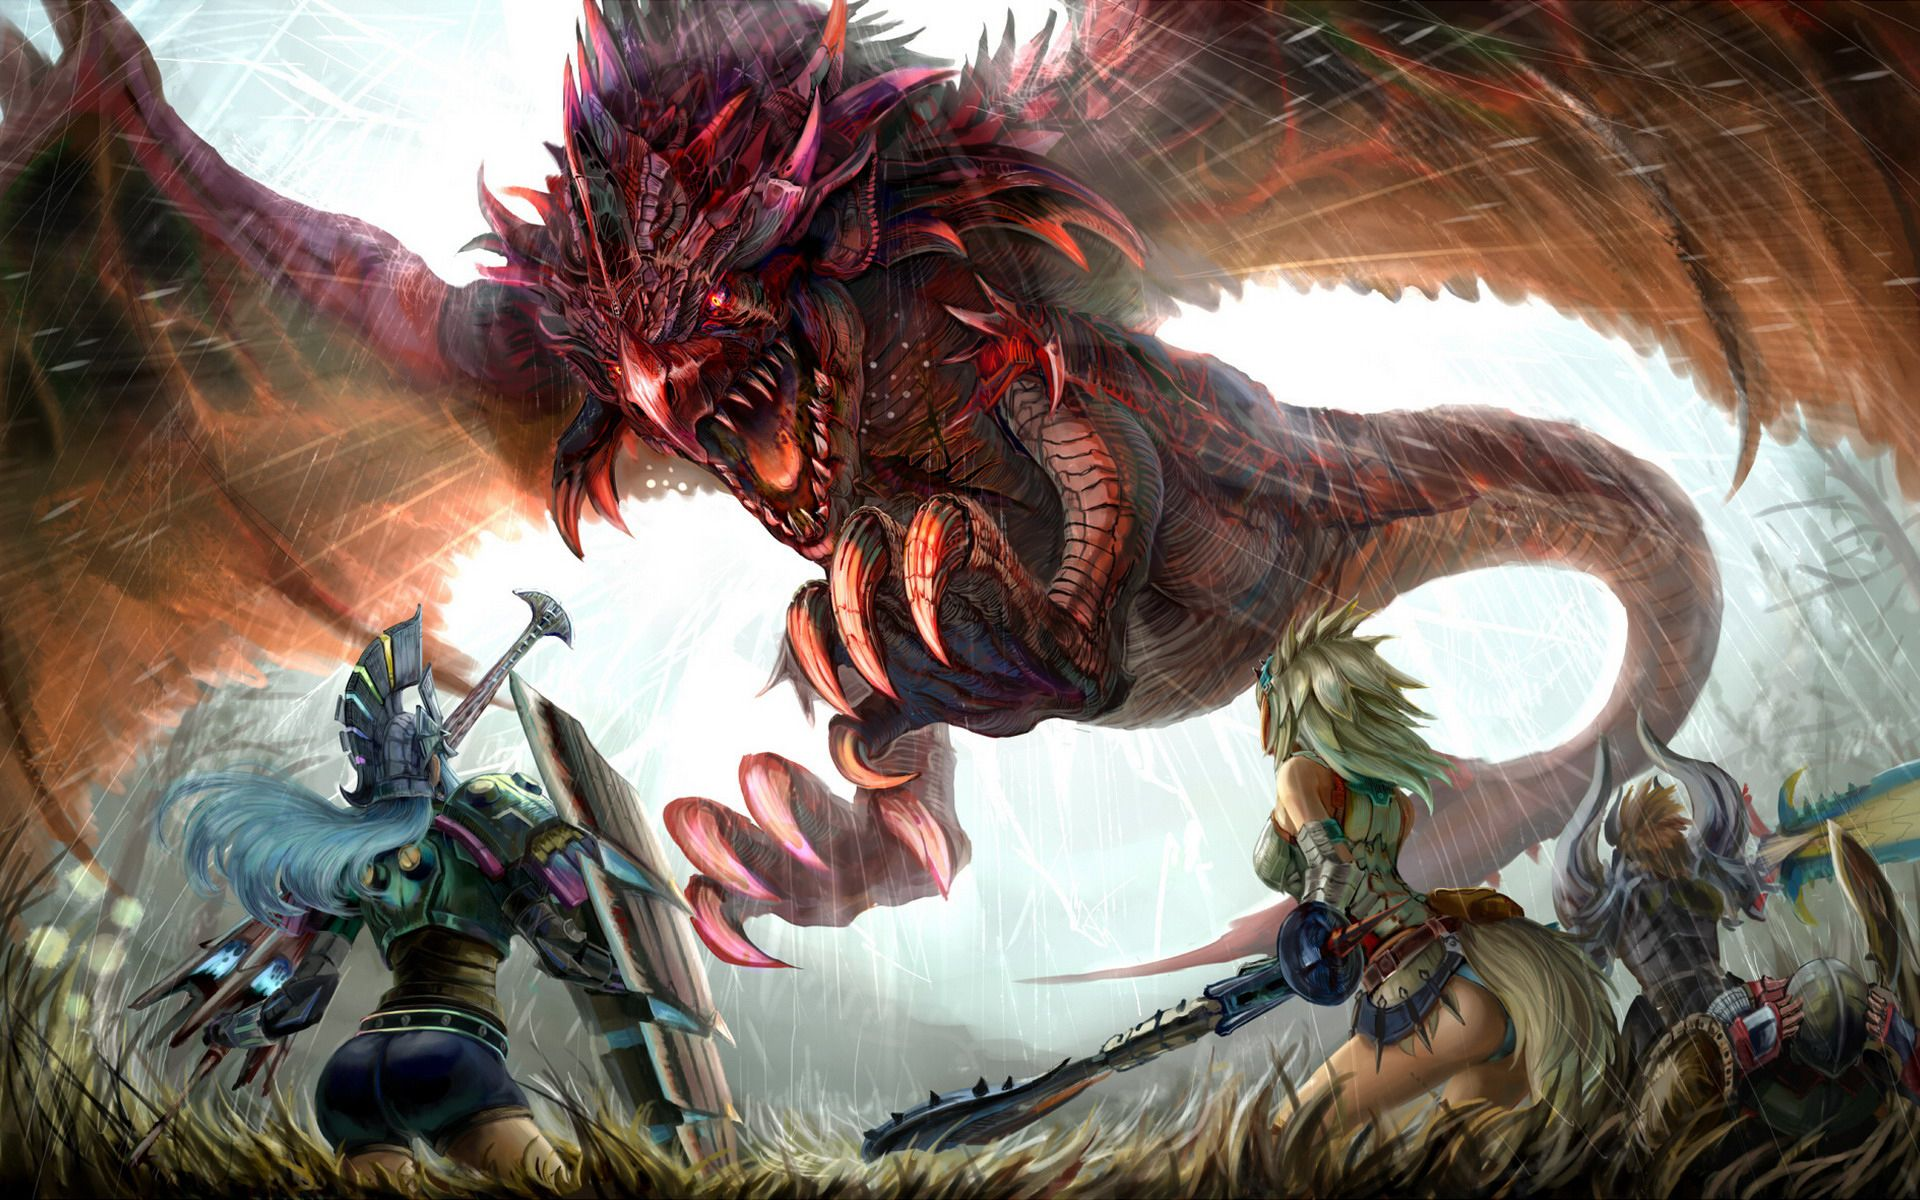 Download Monster Hunter Wallpaper High Definition For Free Wallpaper Monodomo Monster Hunter Monster Hunter Art Monster Hunter World Wallpaper